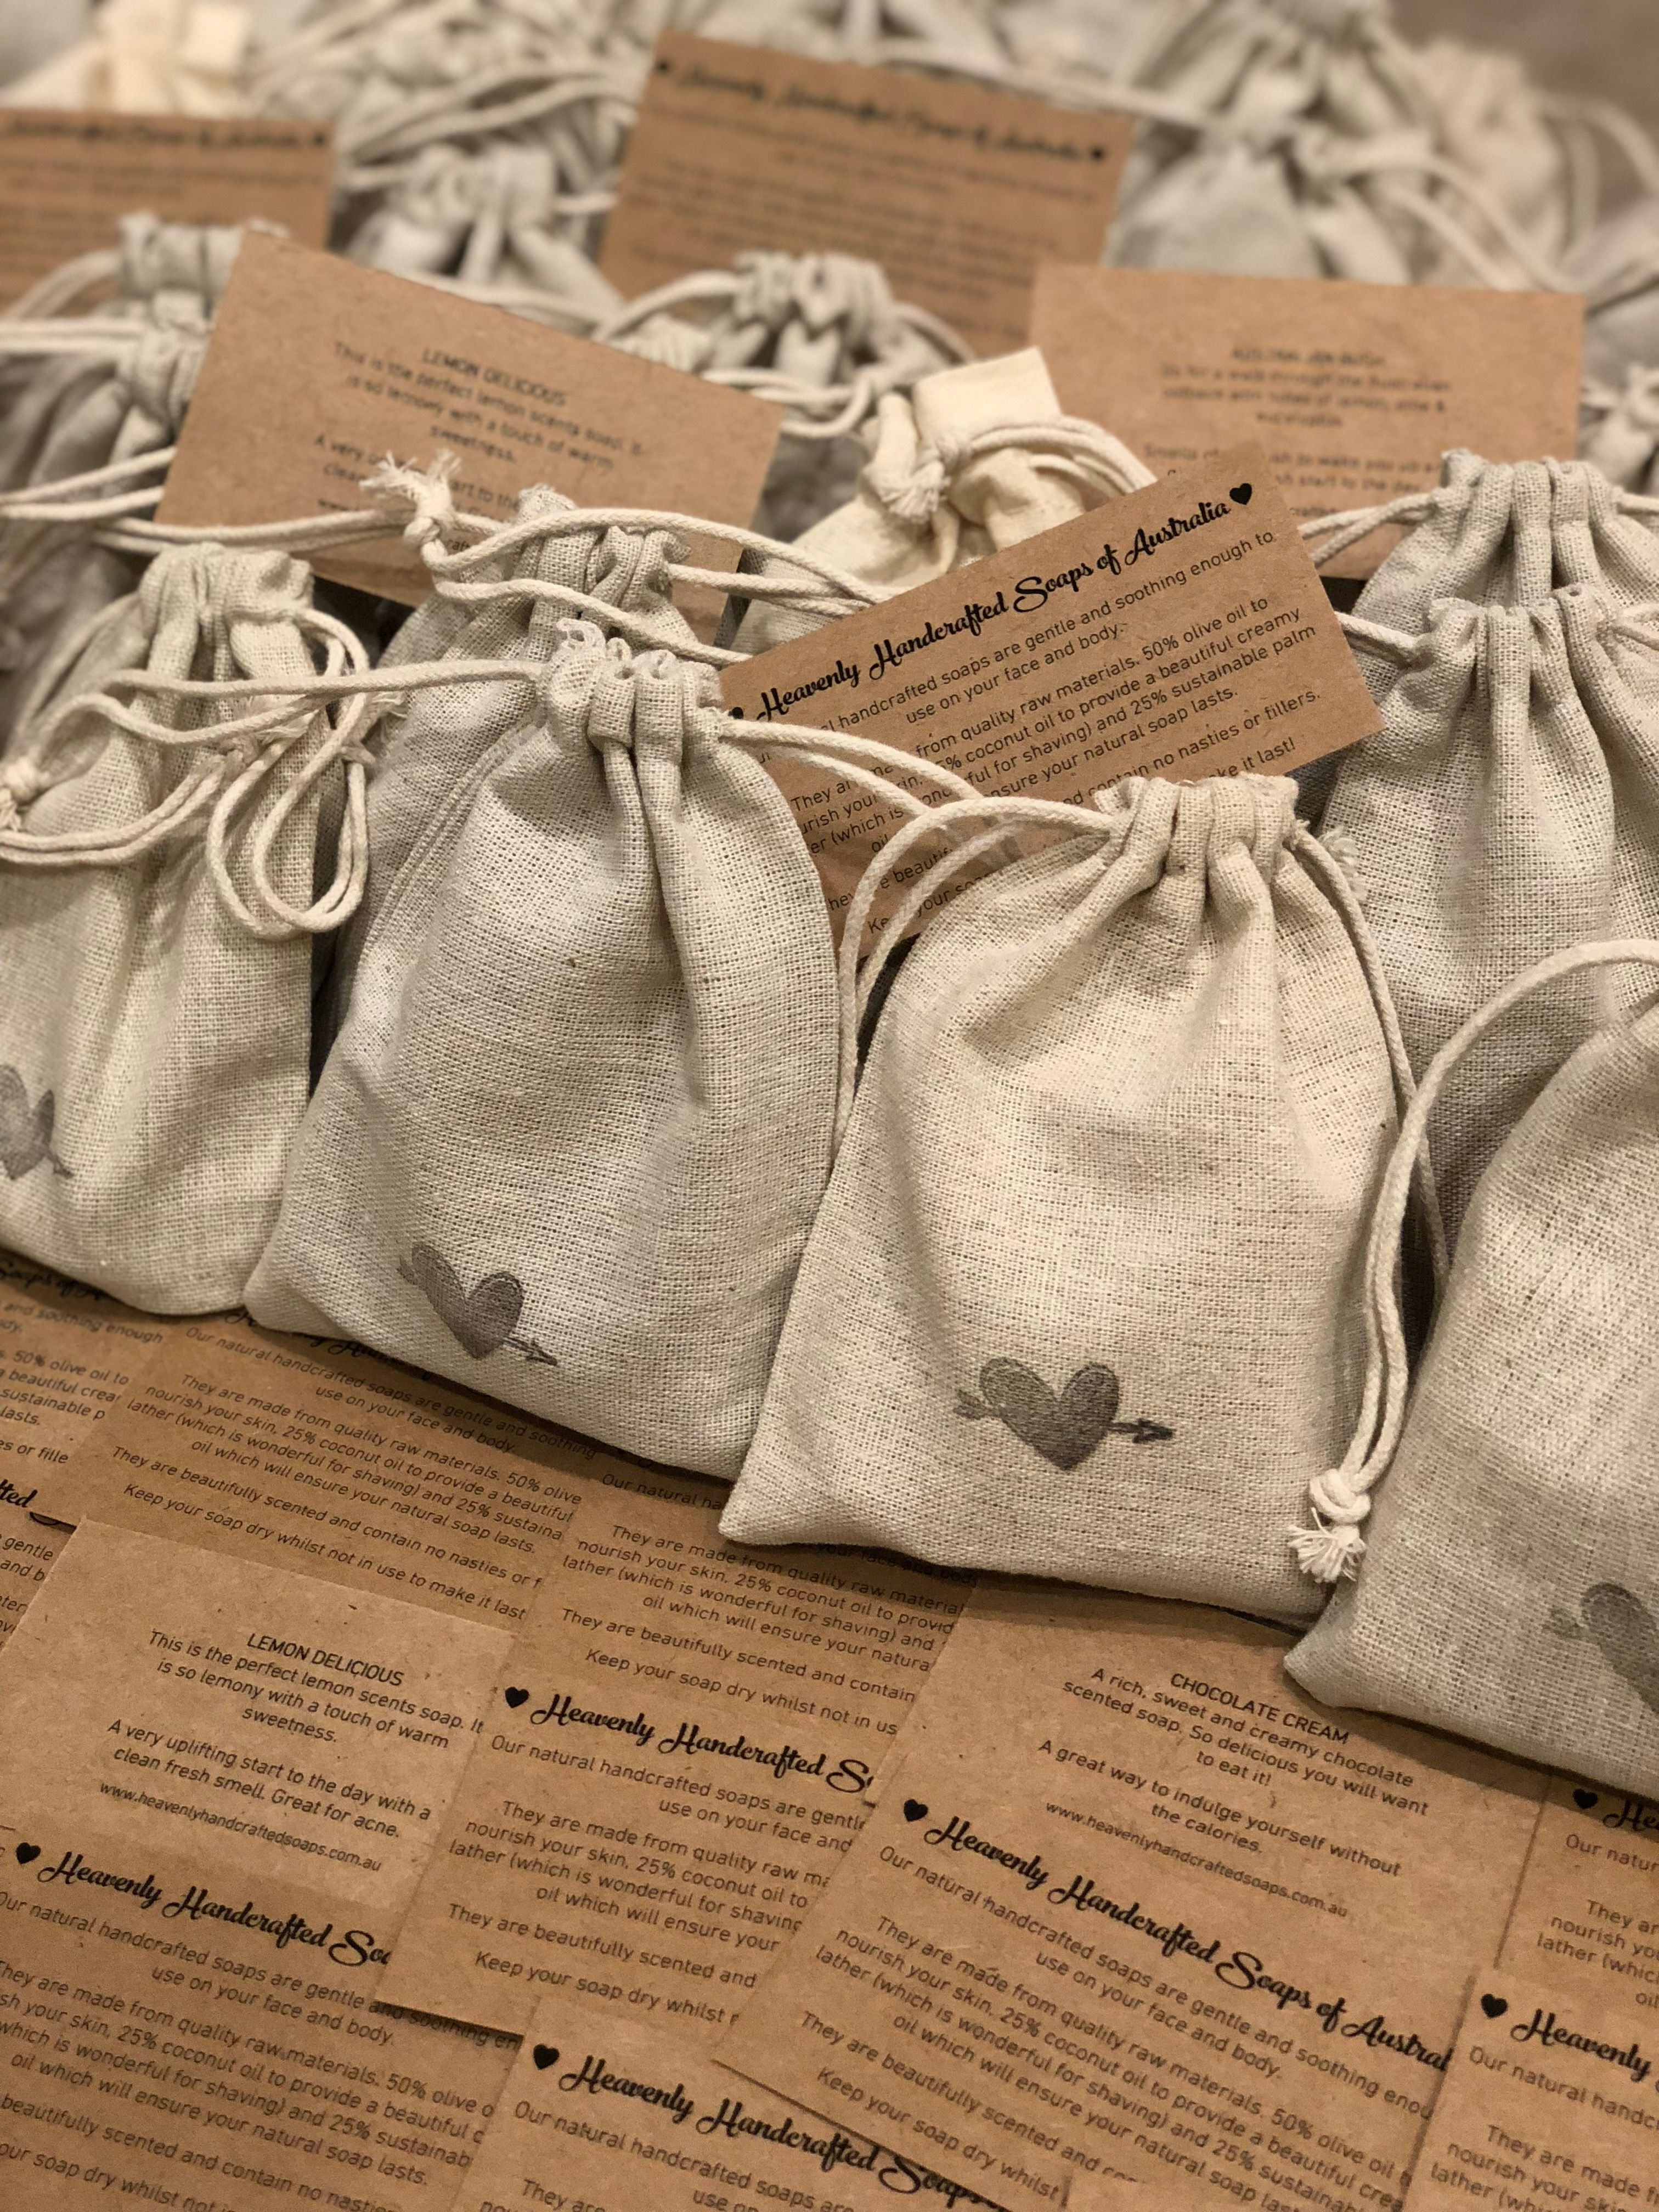 Soaps custom packaged in a small jute bag hand stamped